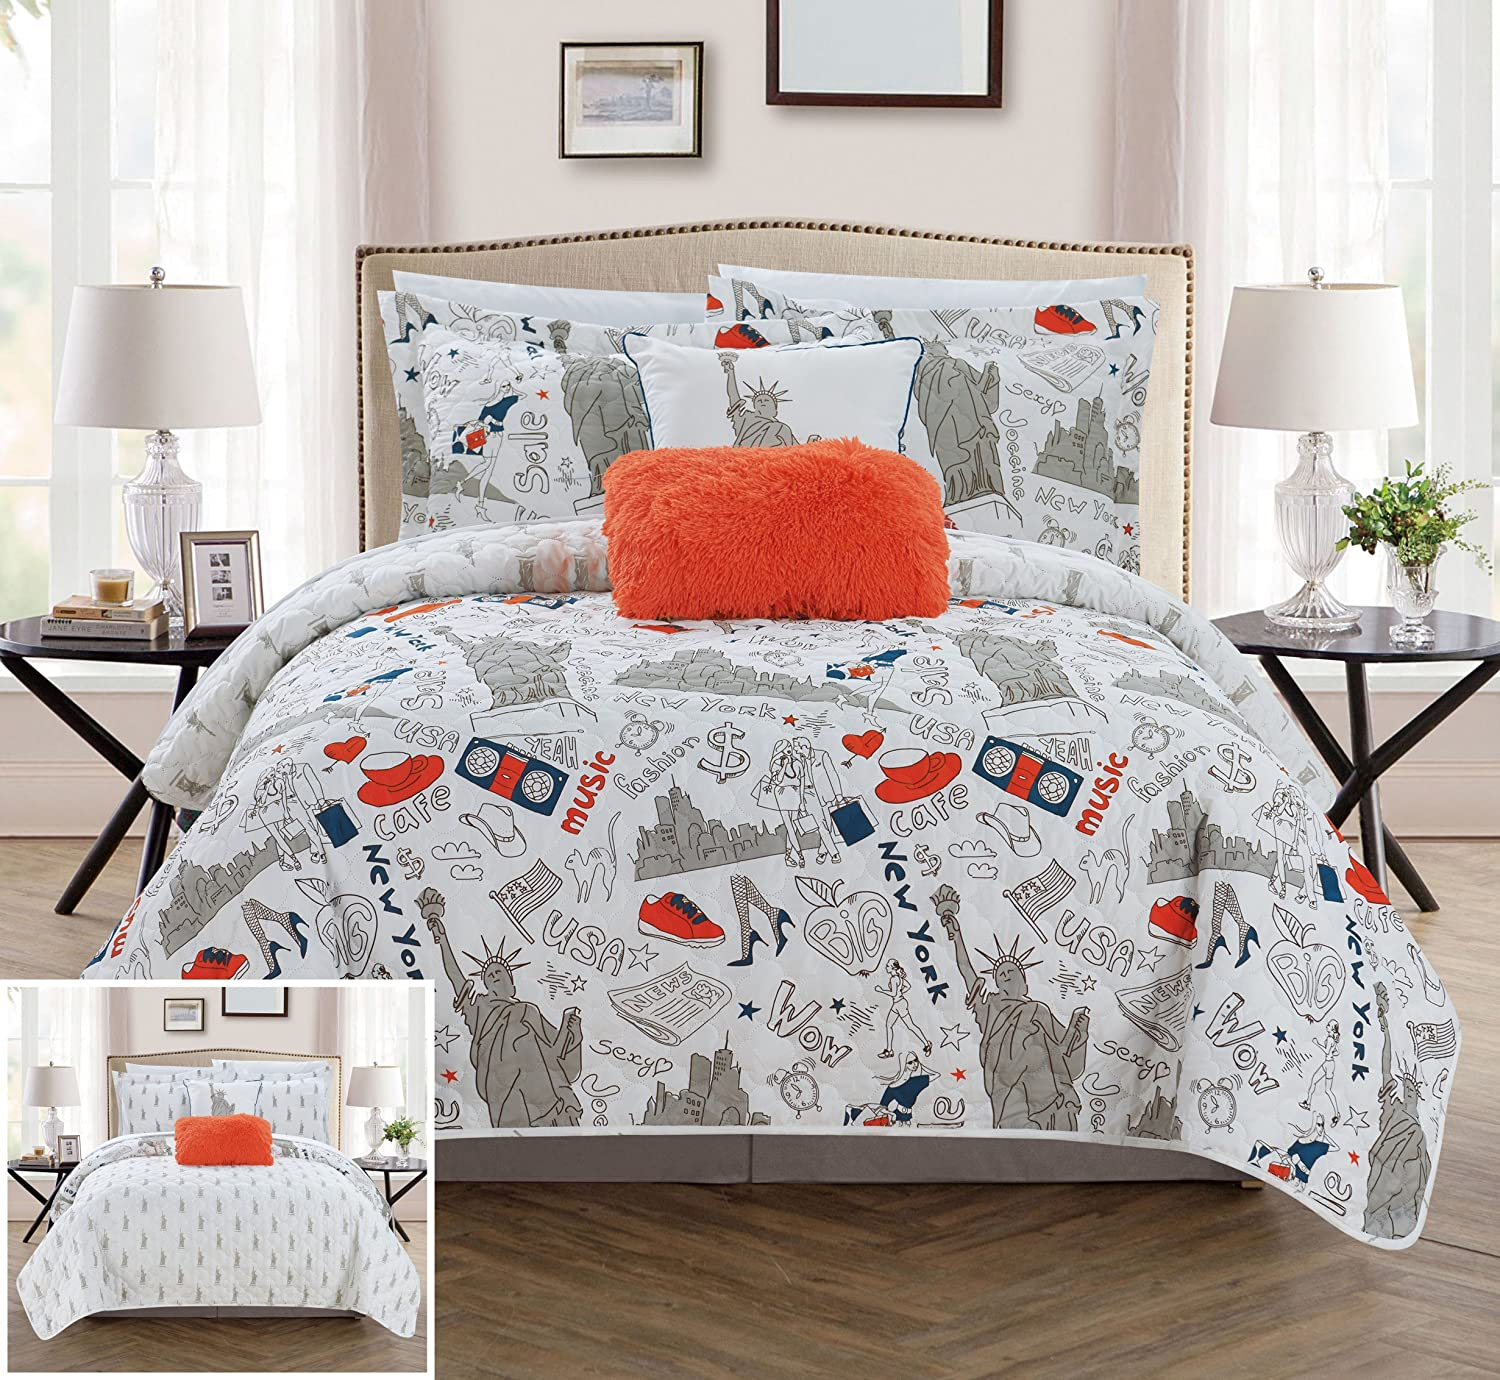 Chic Home BQS15099-AN New York 4 Piece Reversible Quilt Set City Inspired Printed Design Coverlet Bedding - Decorative Pillows Sham Included/XL Size, Twin, Navy